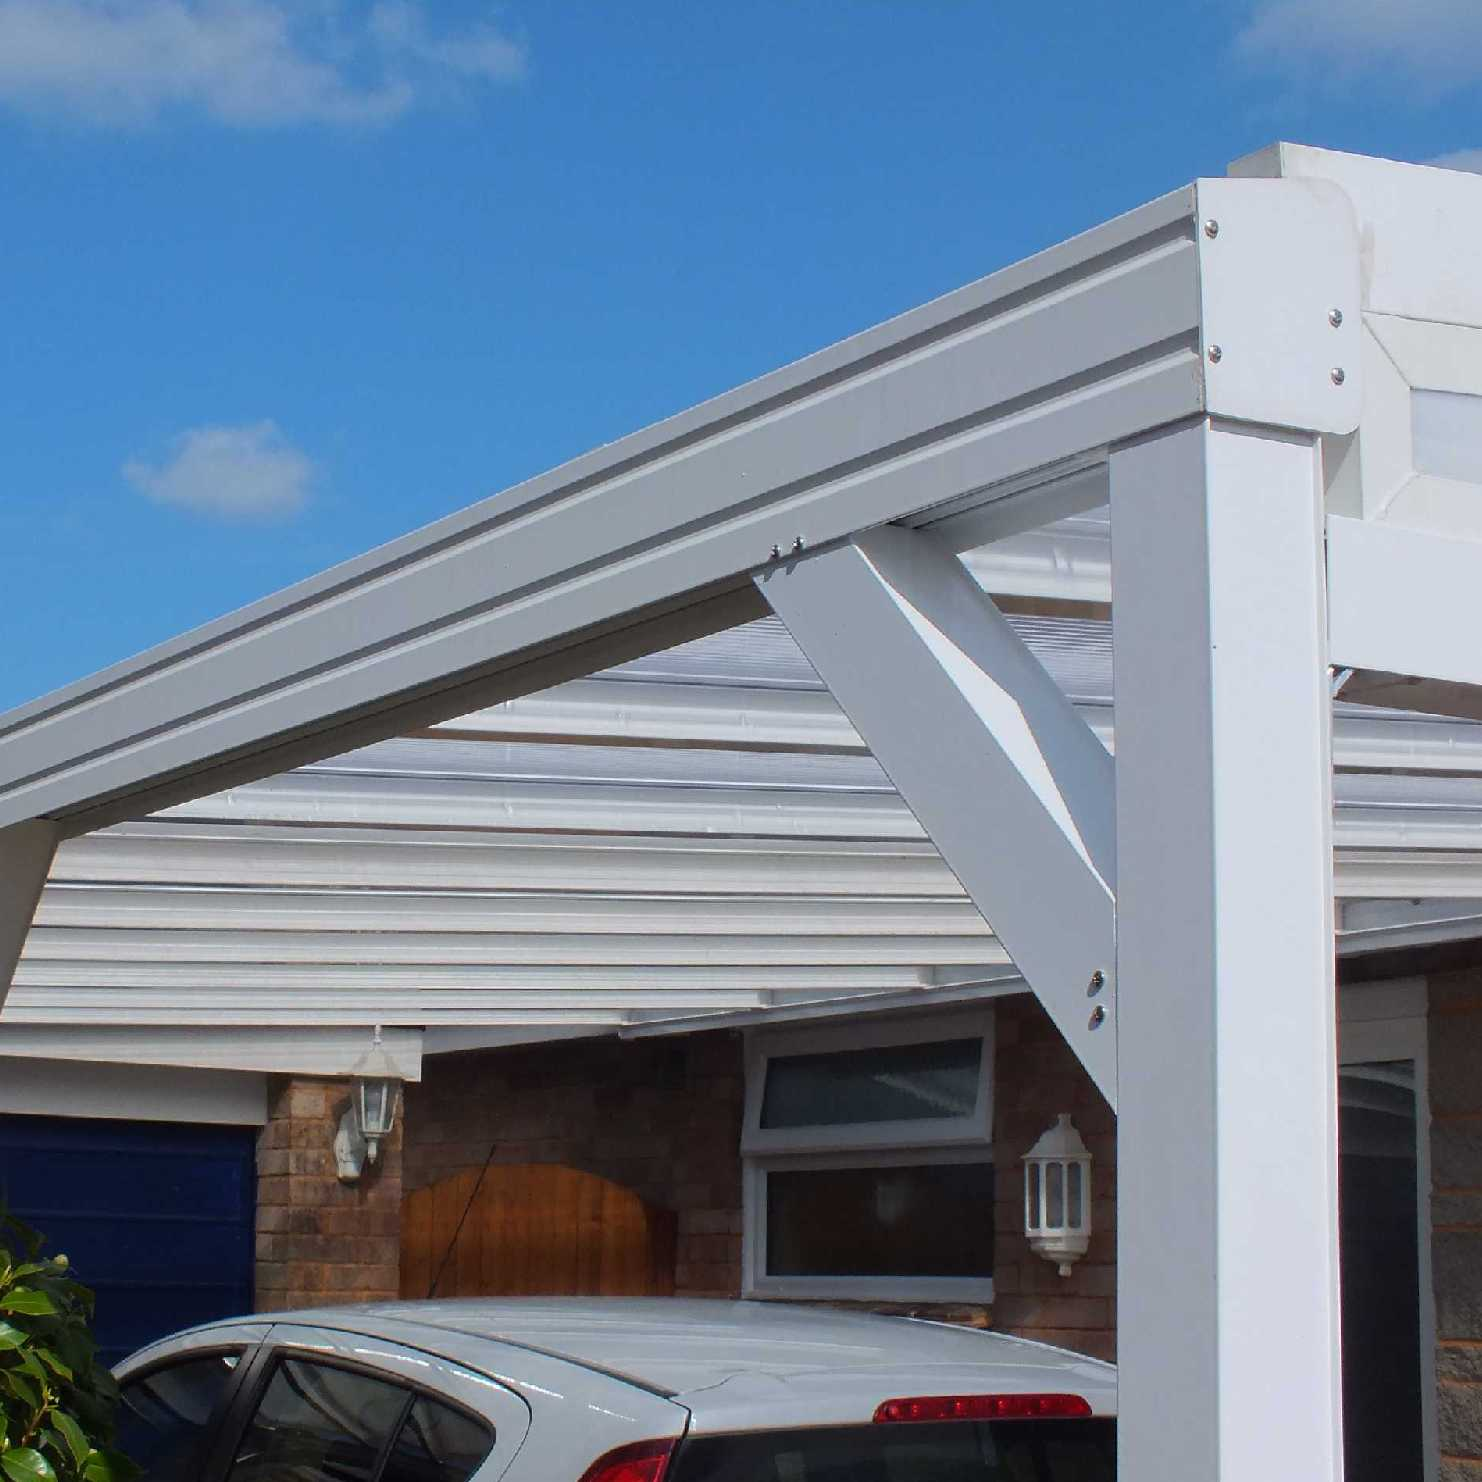 Great deals on Omega Smart Lean-To Canopy with 16mm Polycarbonate Glazing - 3.1m (W) x 1.5m (P), (2) Supporting Posts